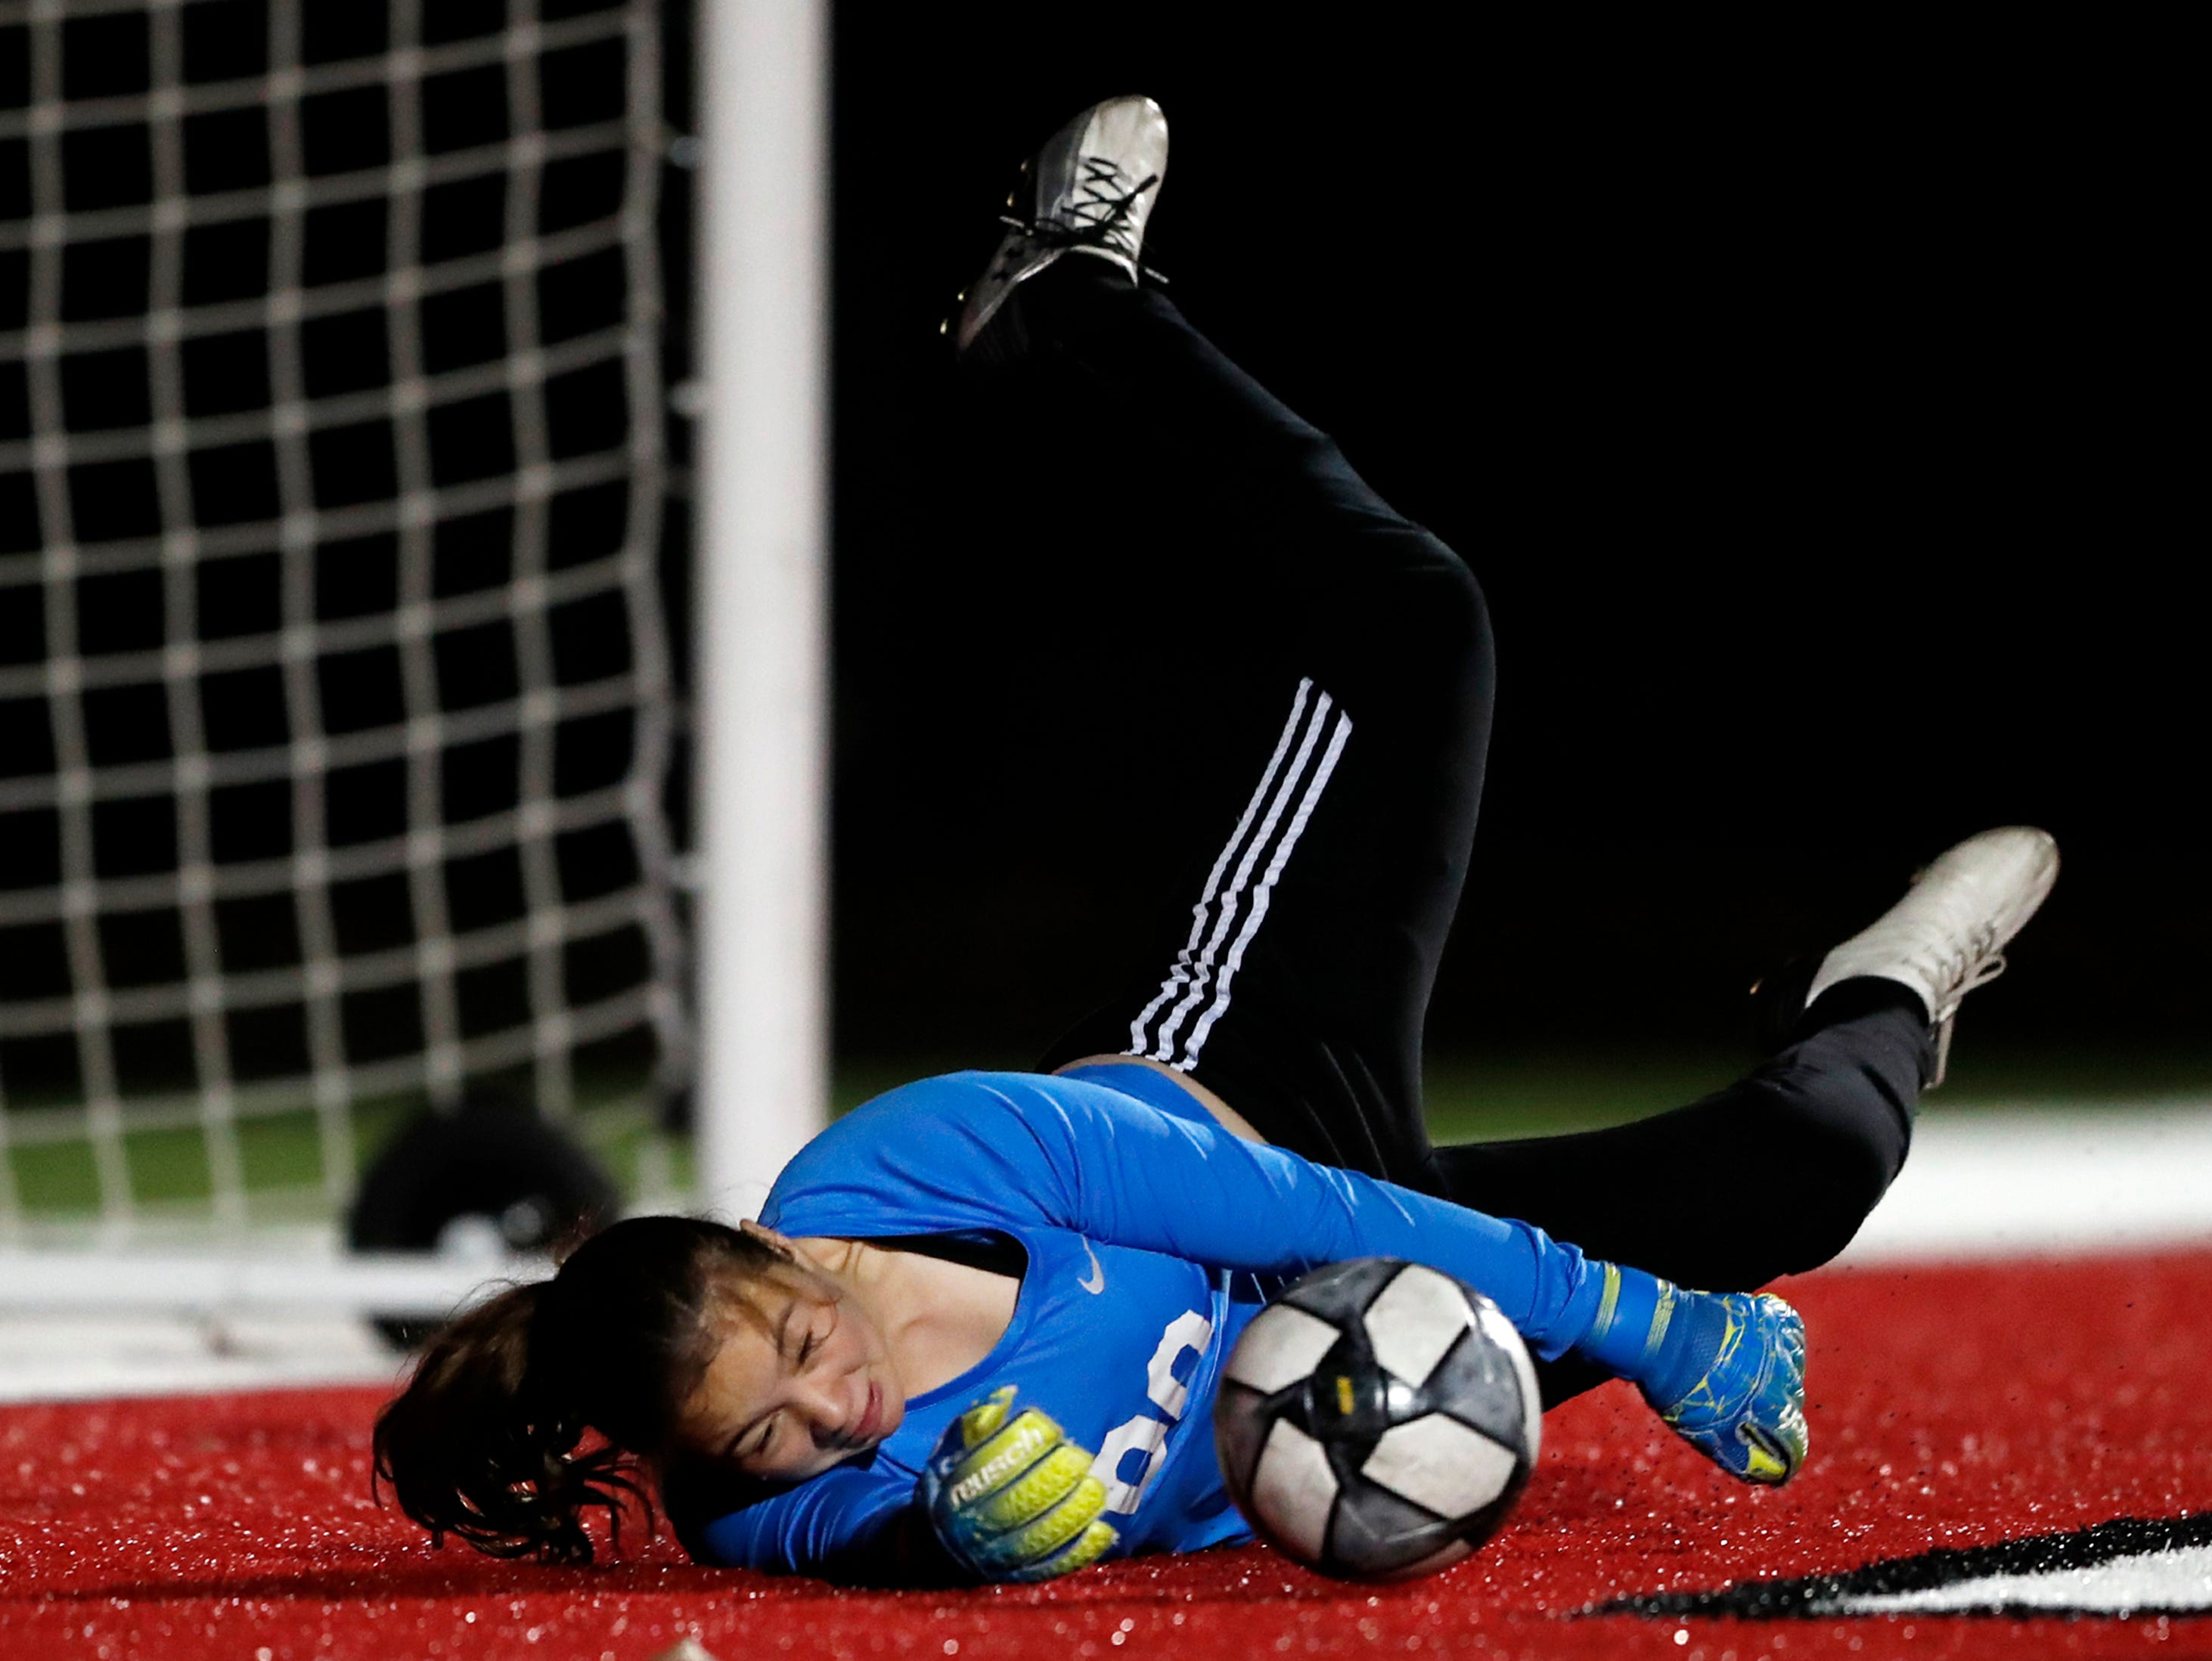 Green Bay East High School's Jordan Koch falls to the ground as she tries to make a save against Hortonville High School Monday, April 8, 2019, in Hortonville, Wis. Danny Damiani/USA TODAY NETWORK-Wisconsin